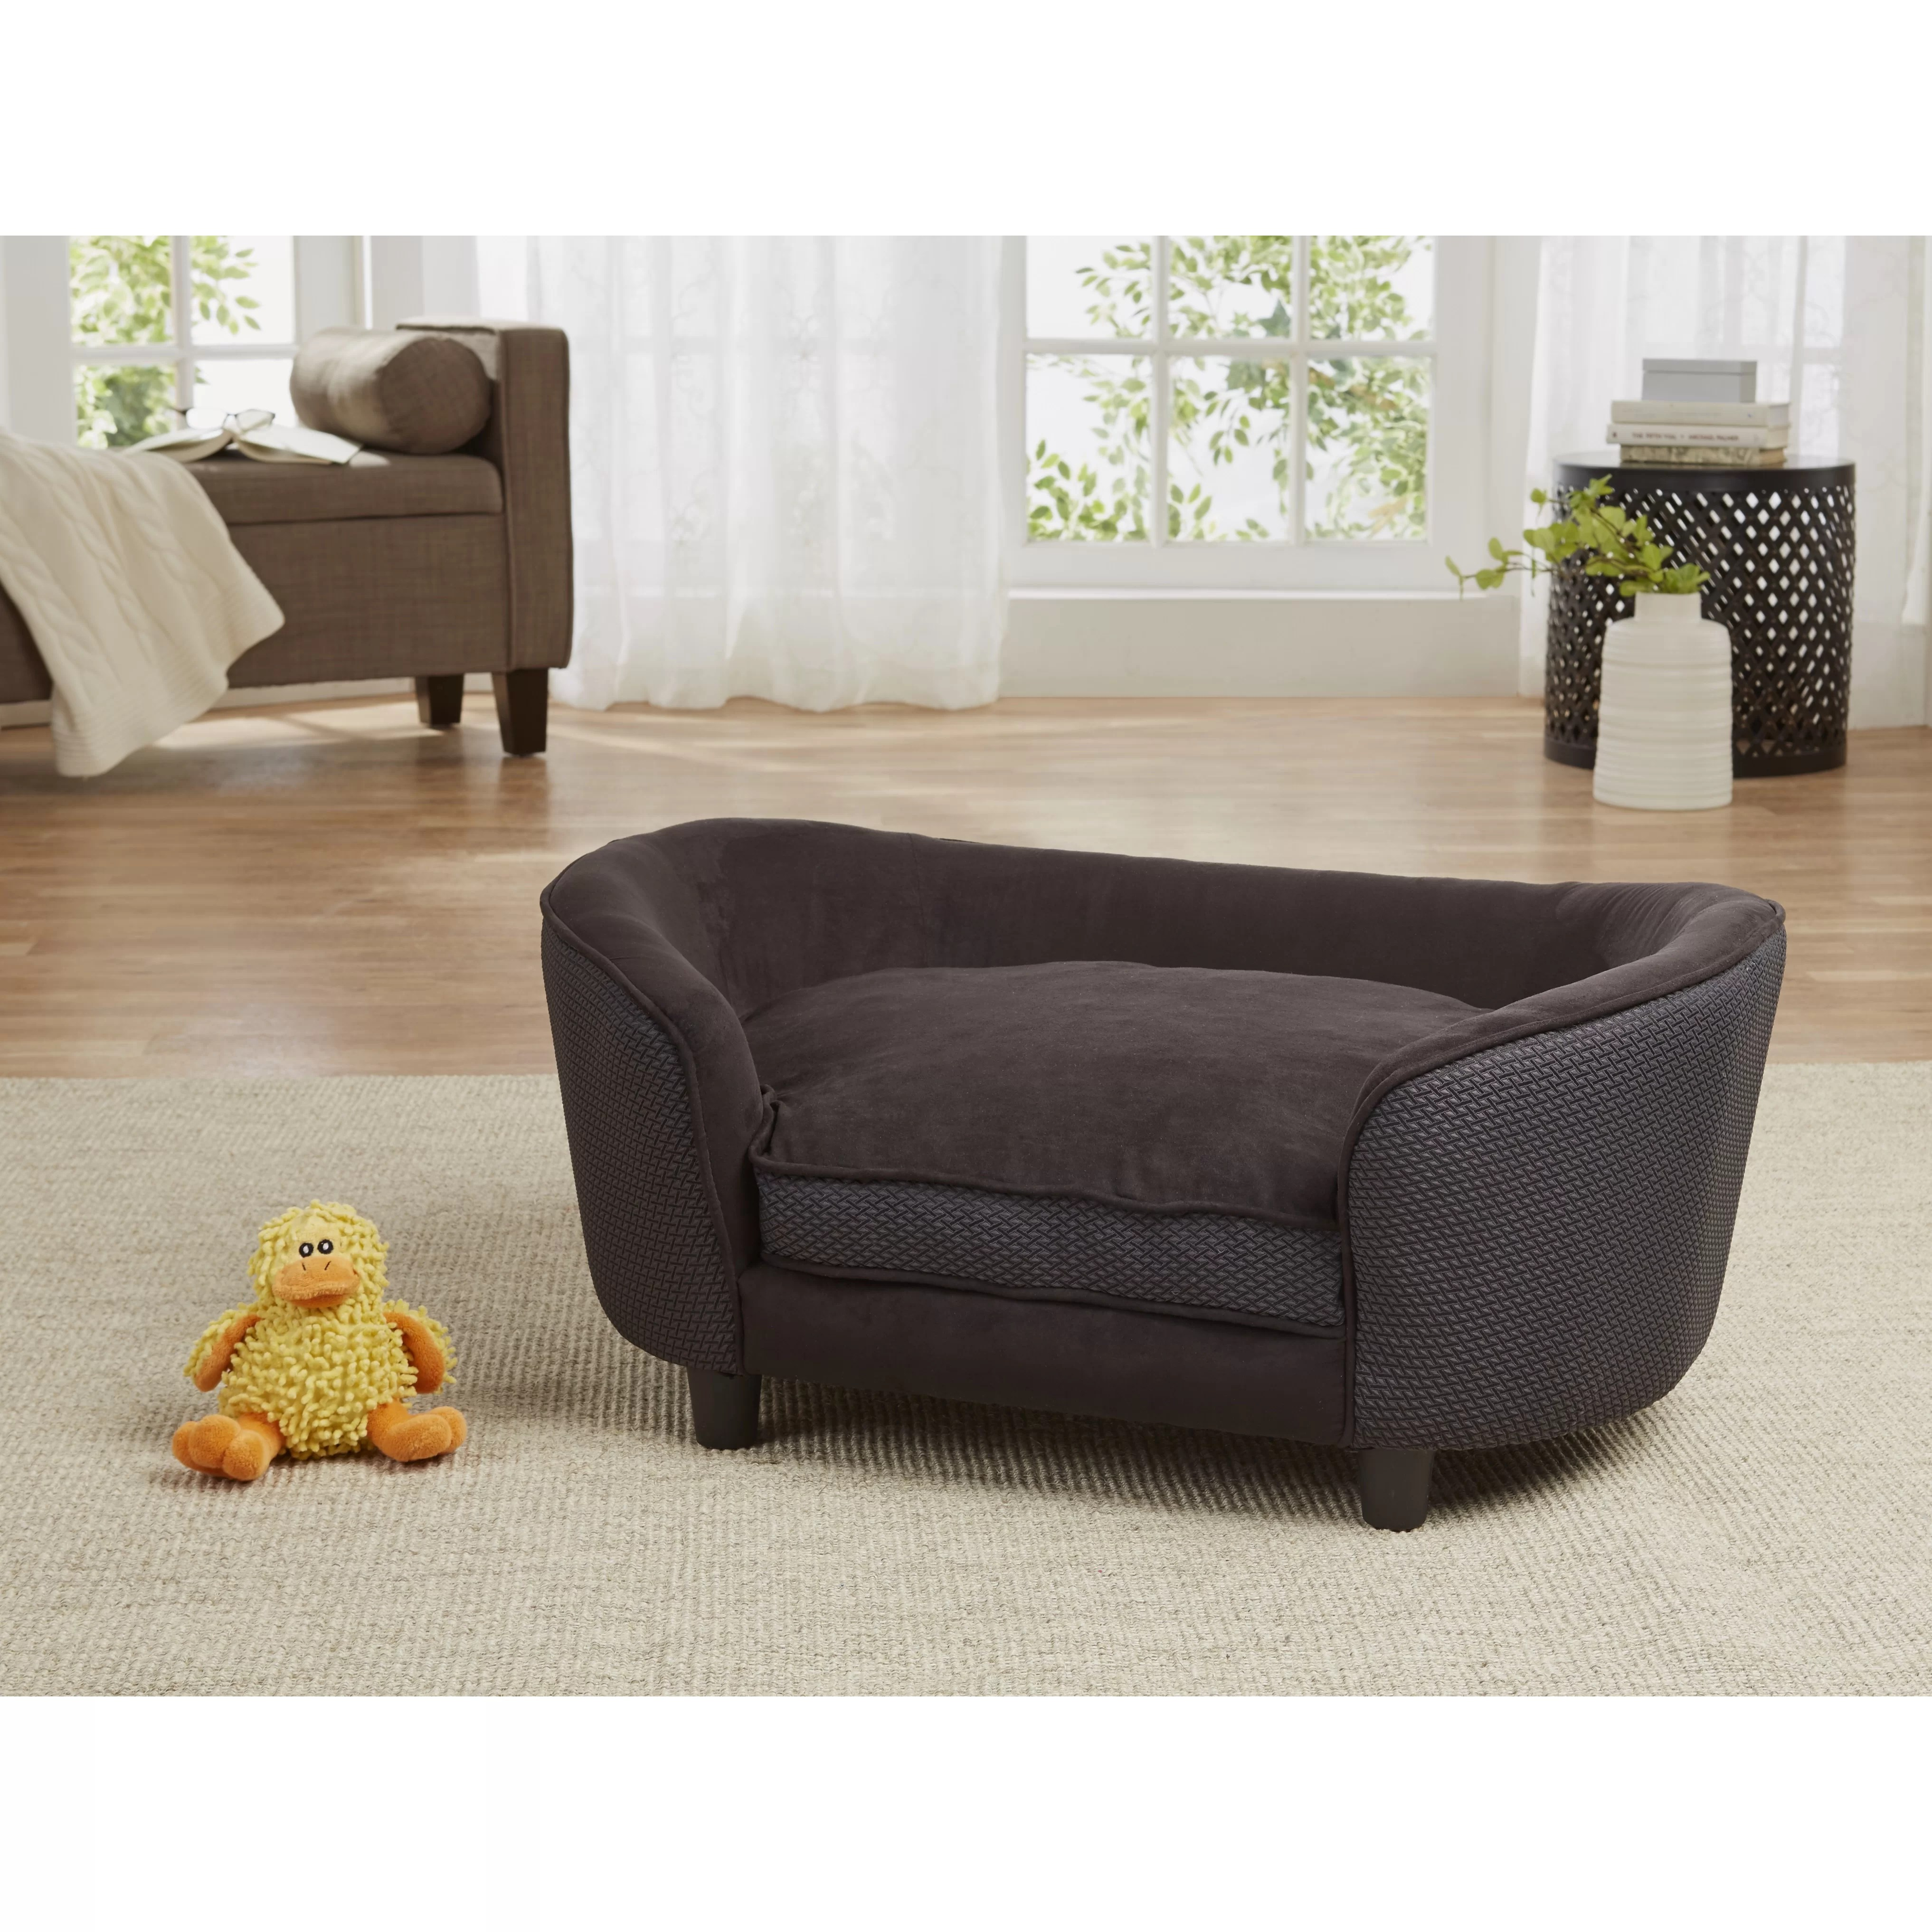 enchanted home mackenzie pet sofa living room designs with chocolate brown hudson dog cushion and reviews